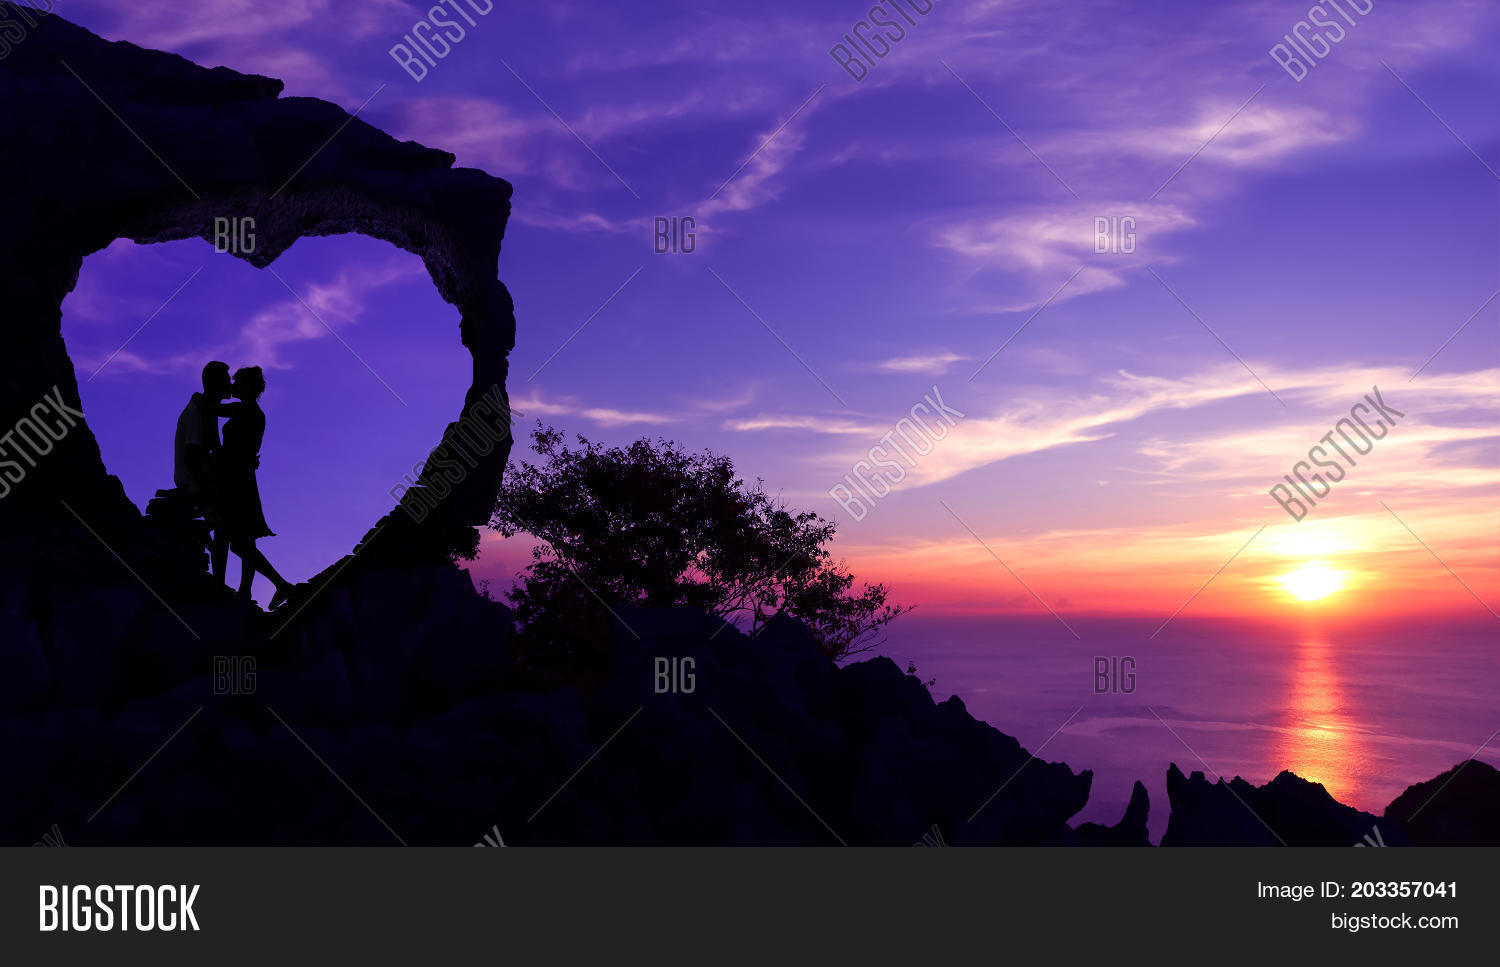 Silhouette Valentine Background Concept Kissing In A Heart Shaped Stone On Mountain With